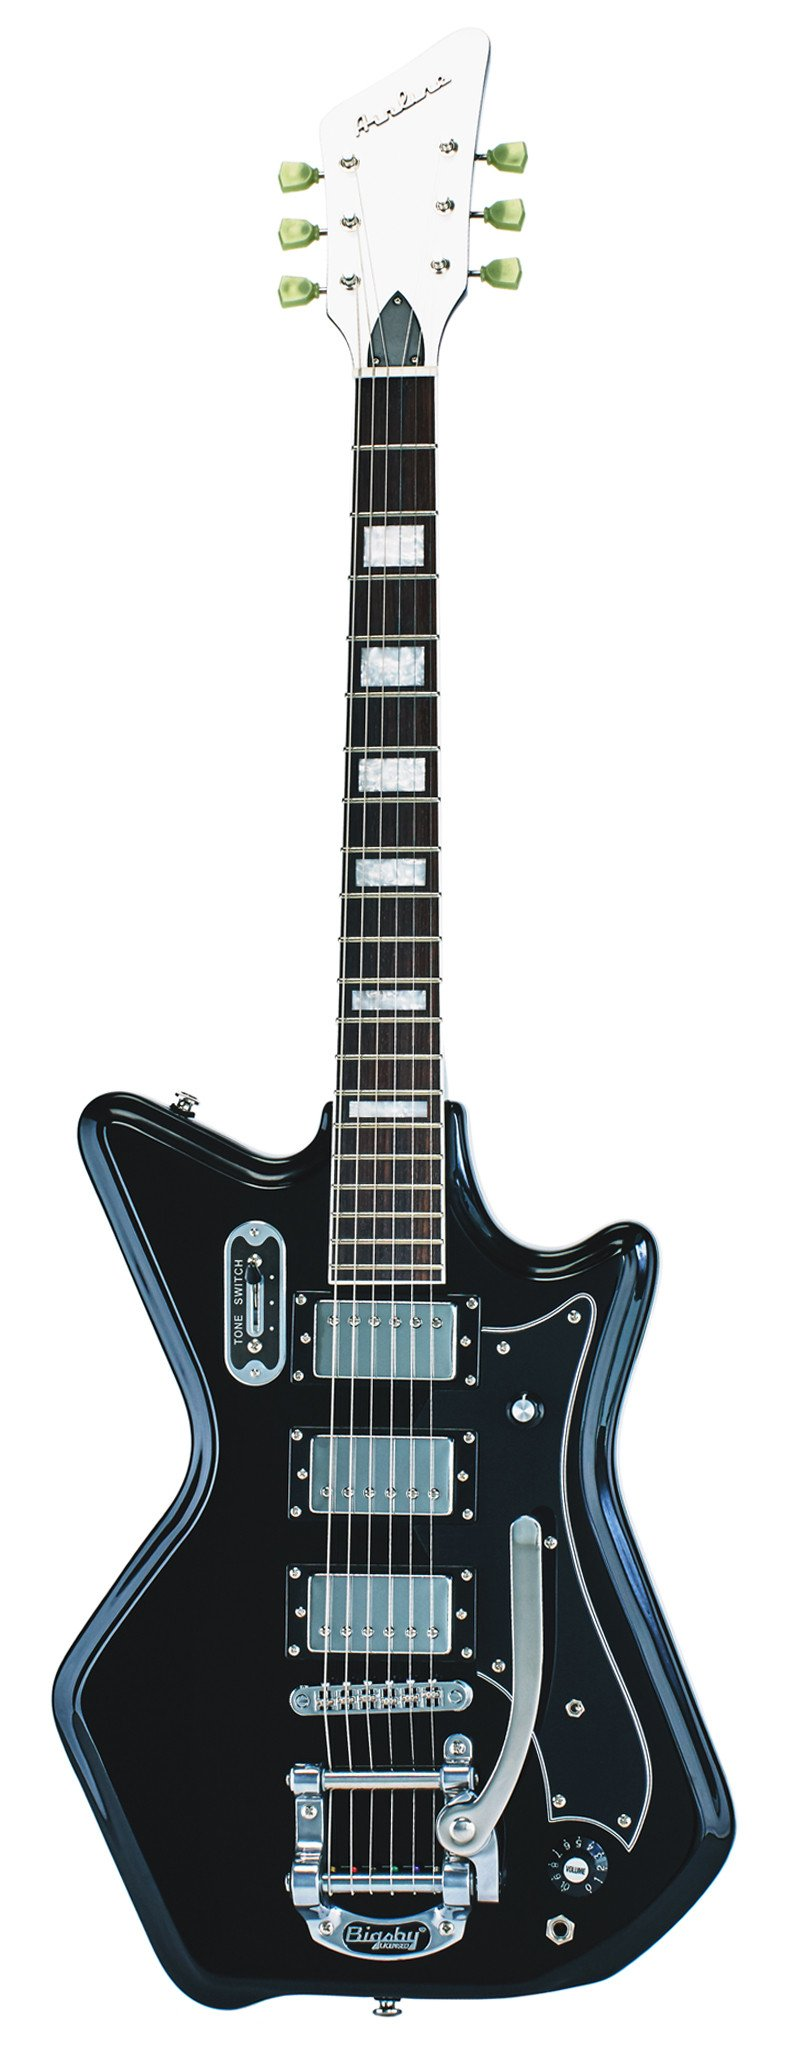 Eastwood Guitars Airline 593P Ripley Black Full Front